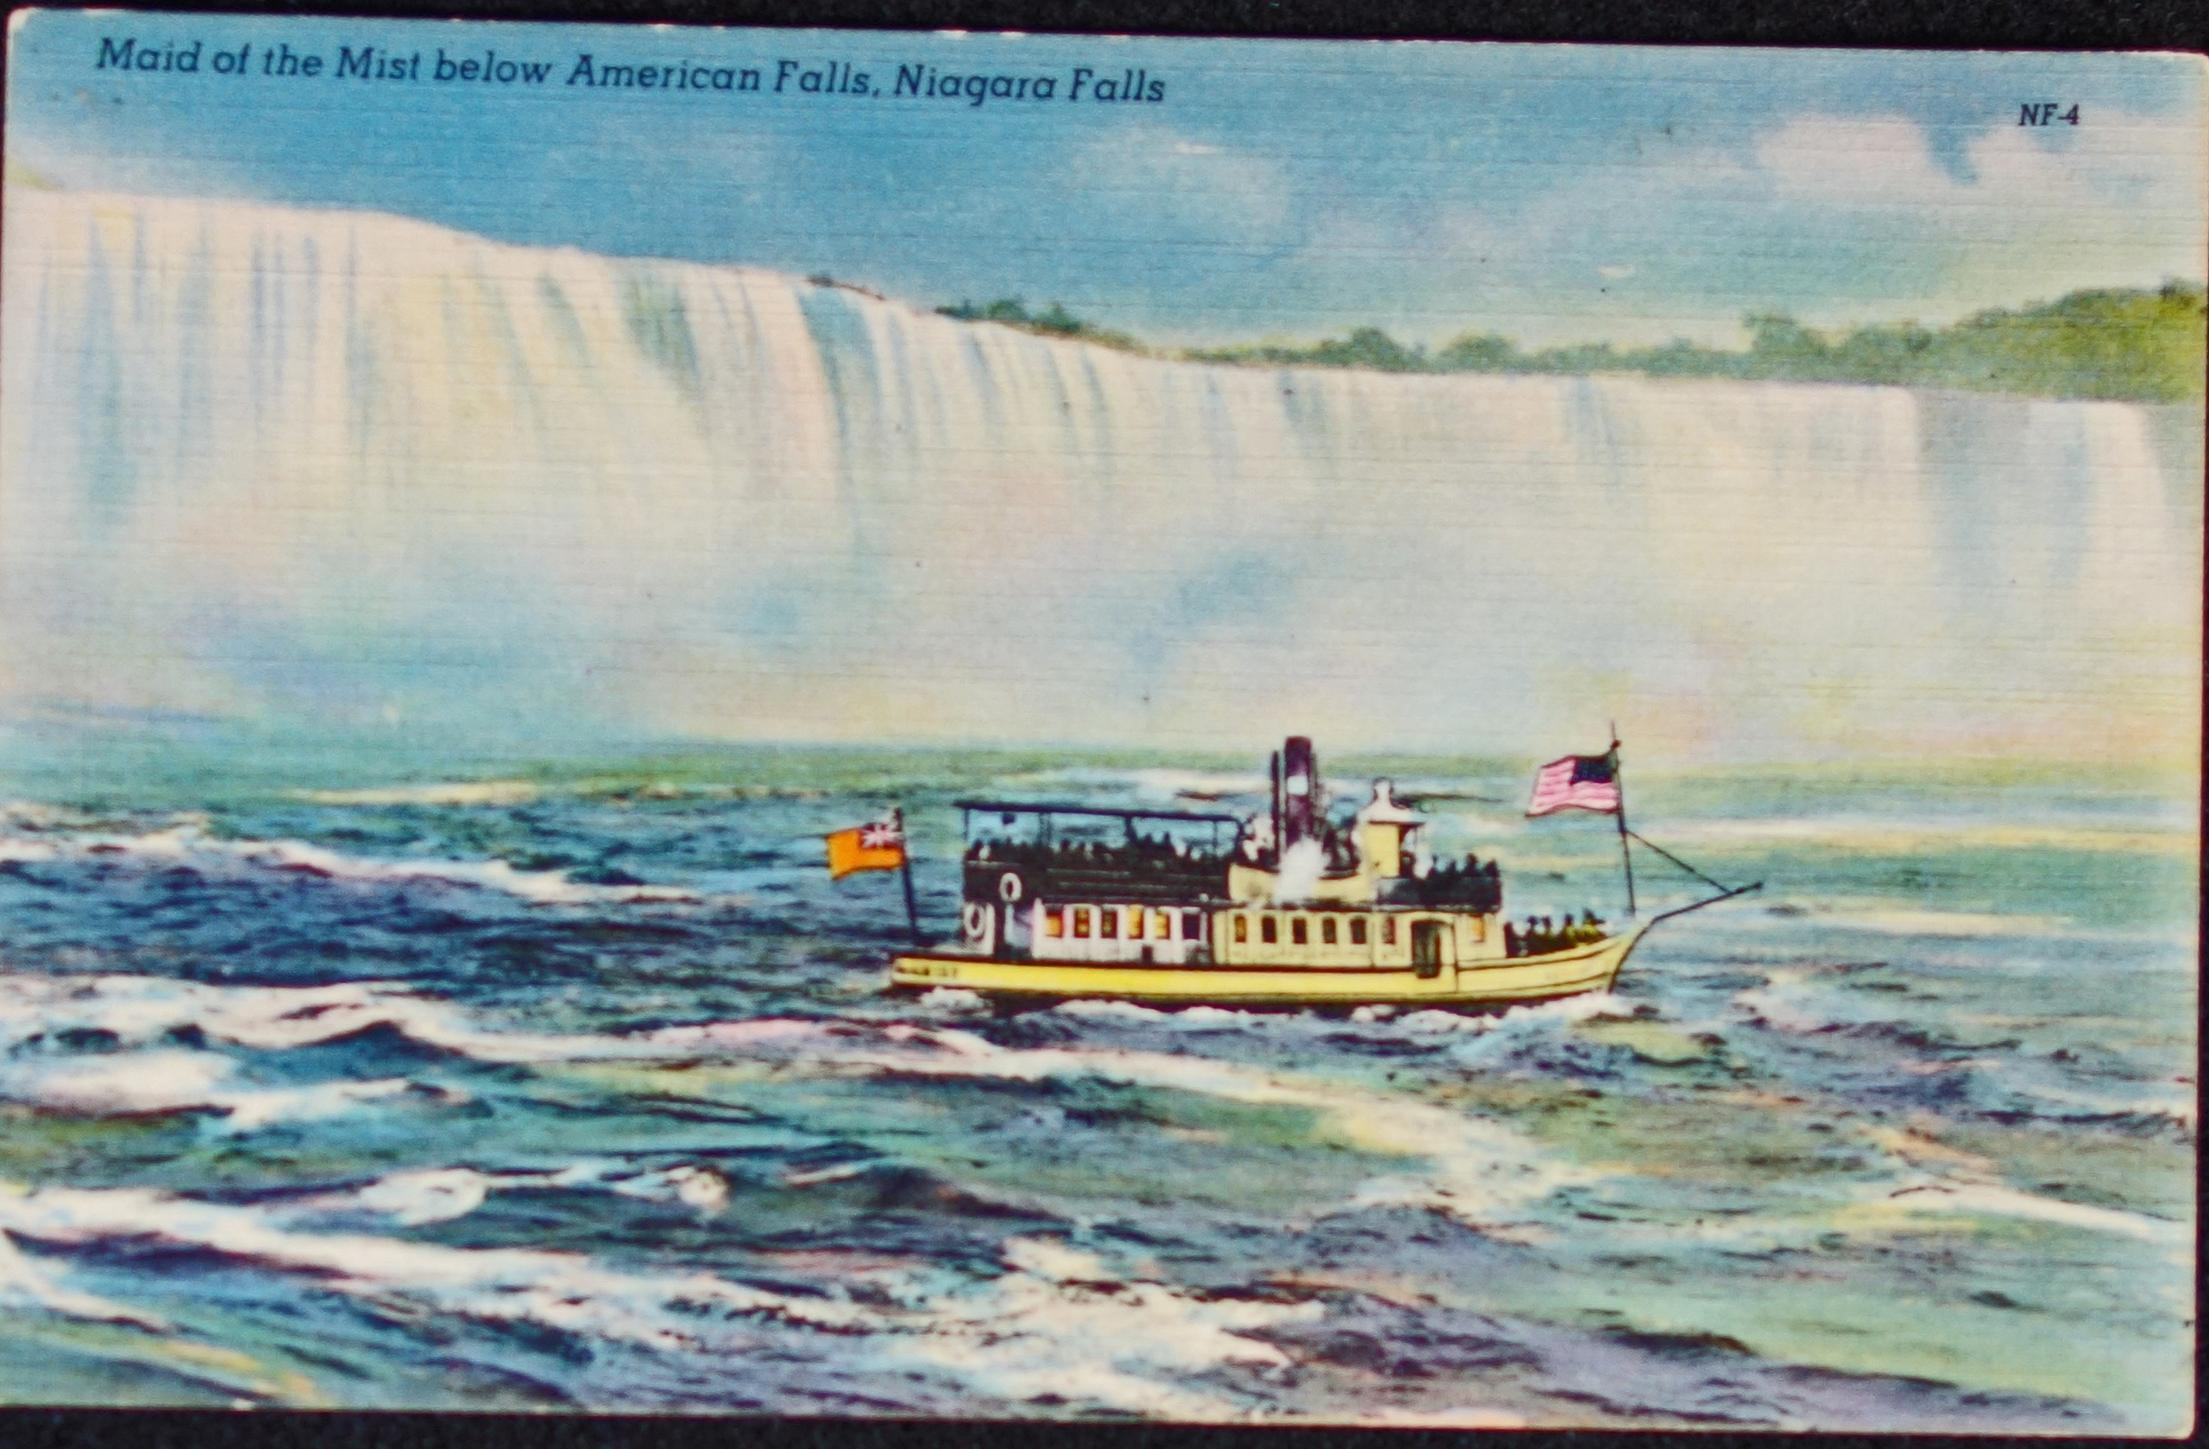 A postcard of Maid of the Mist.